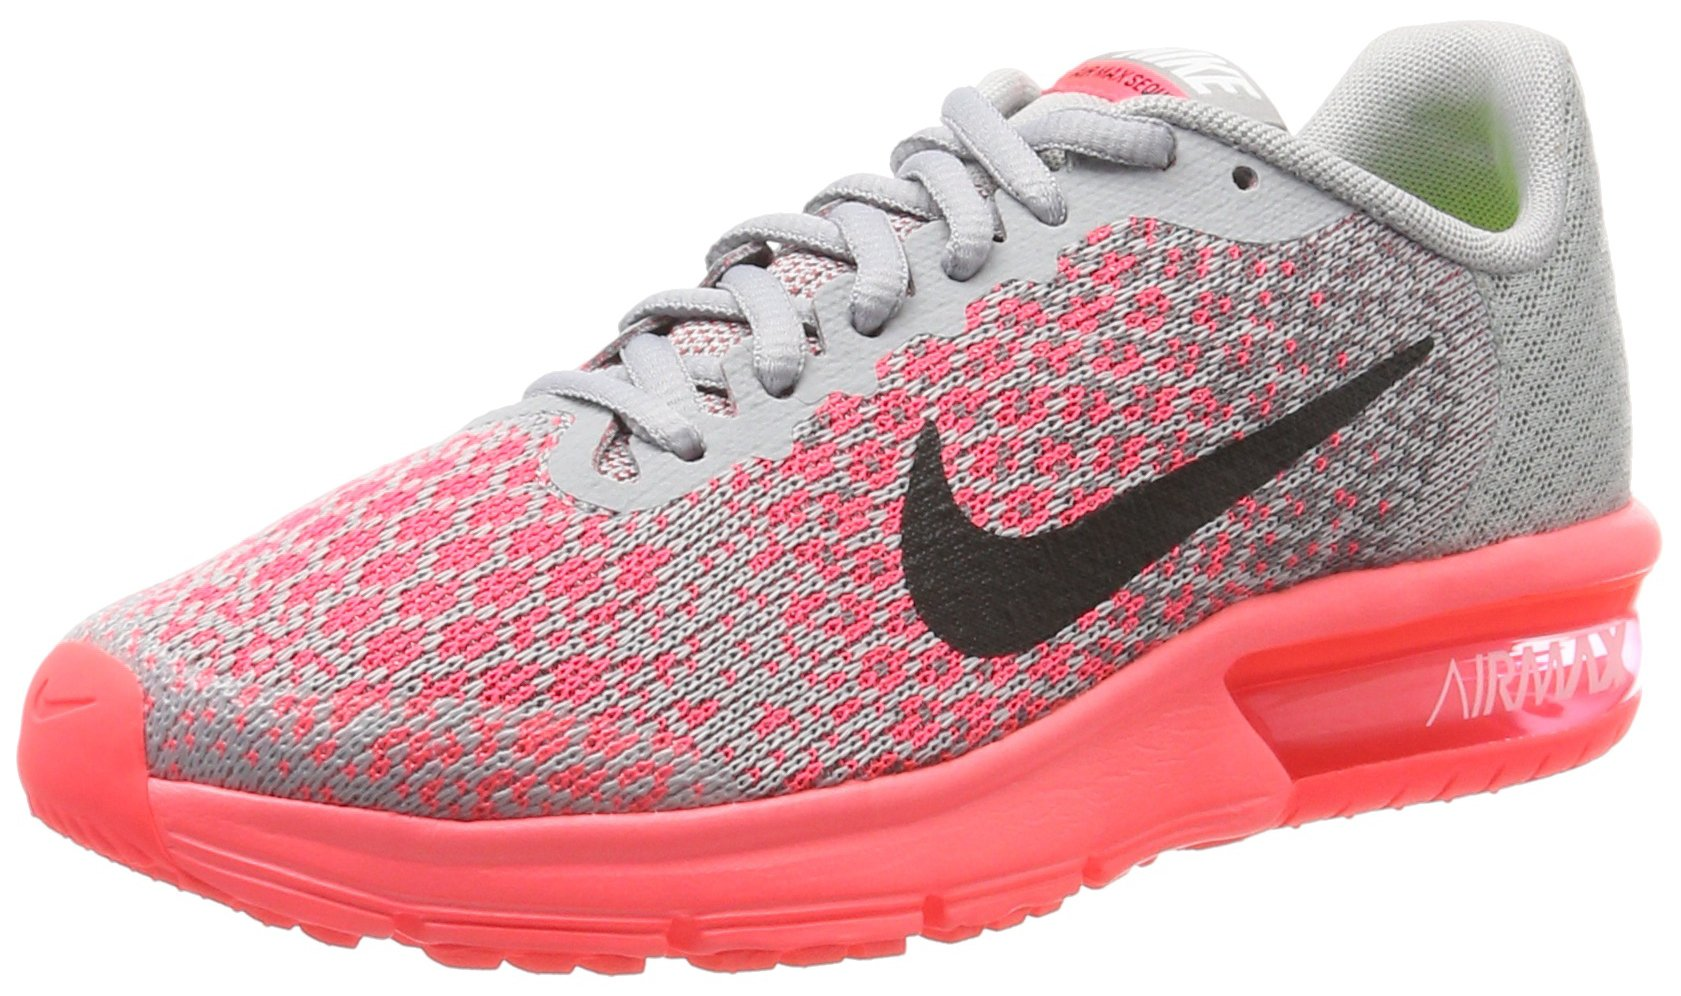 NIKE Air Max Sequent 2 Running Shoe (4.5 Big Kid M) by Nike (Image #1)